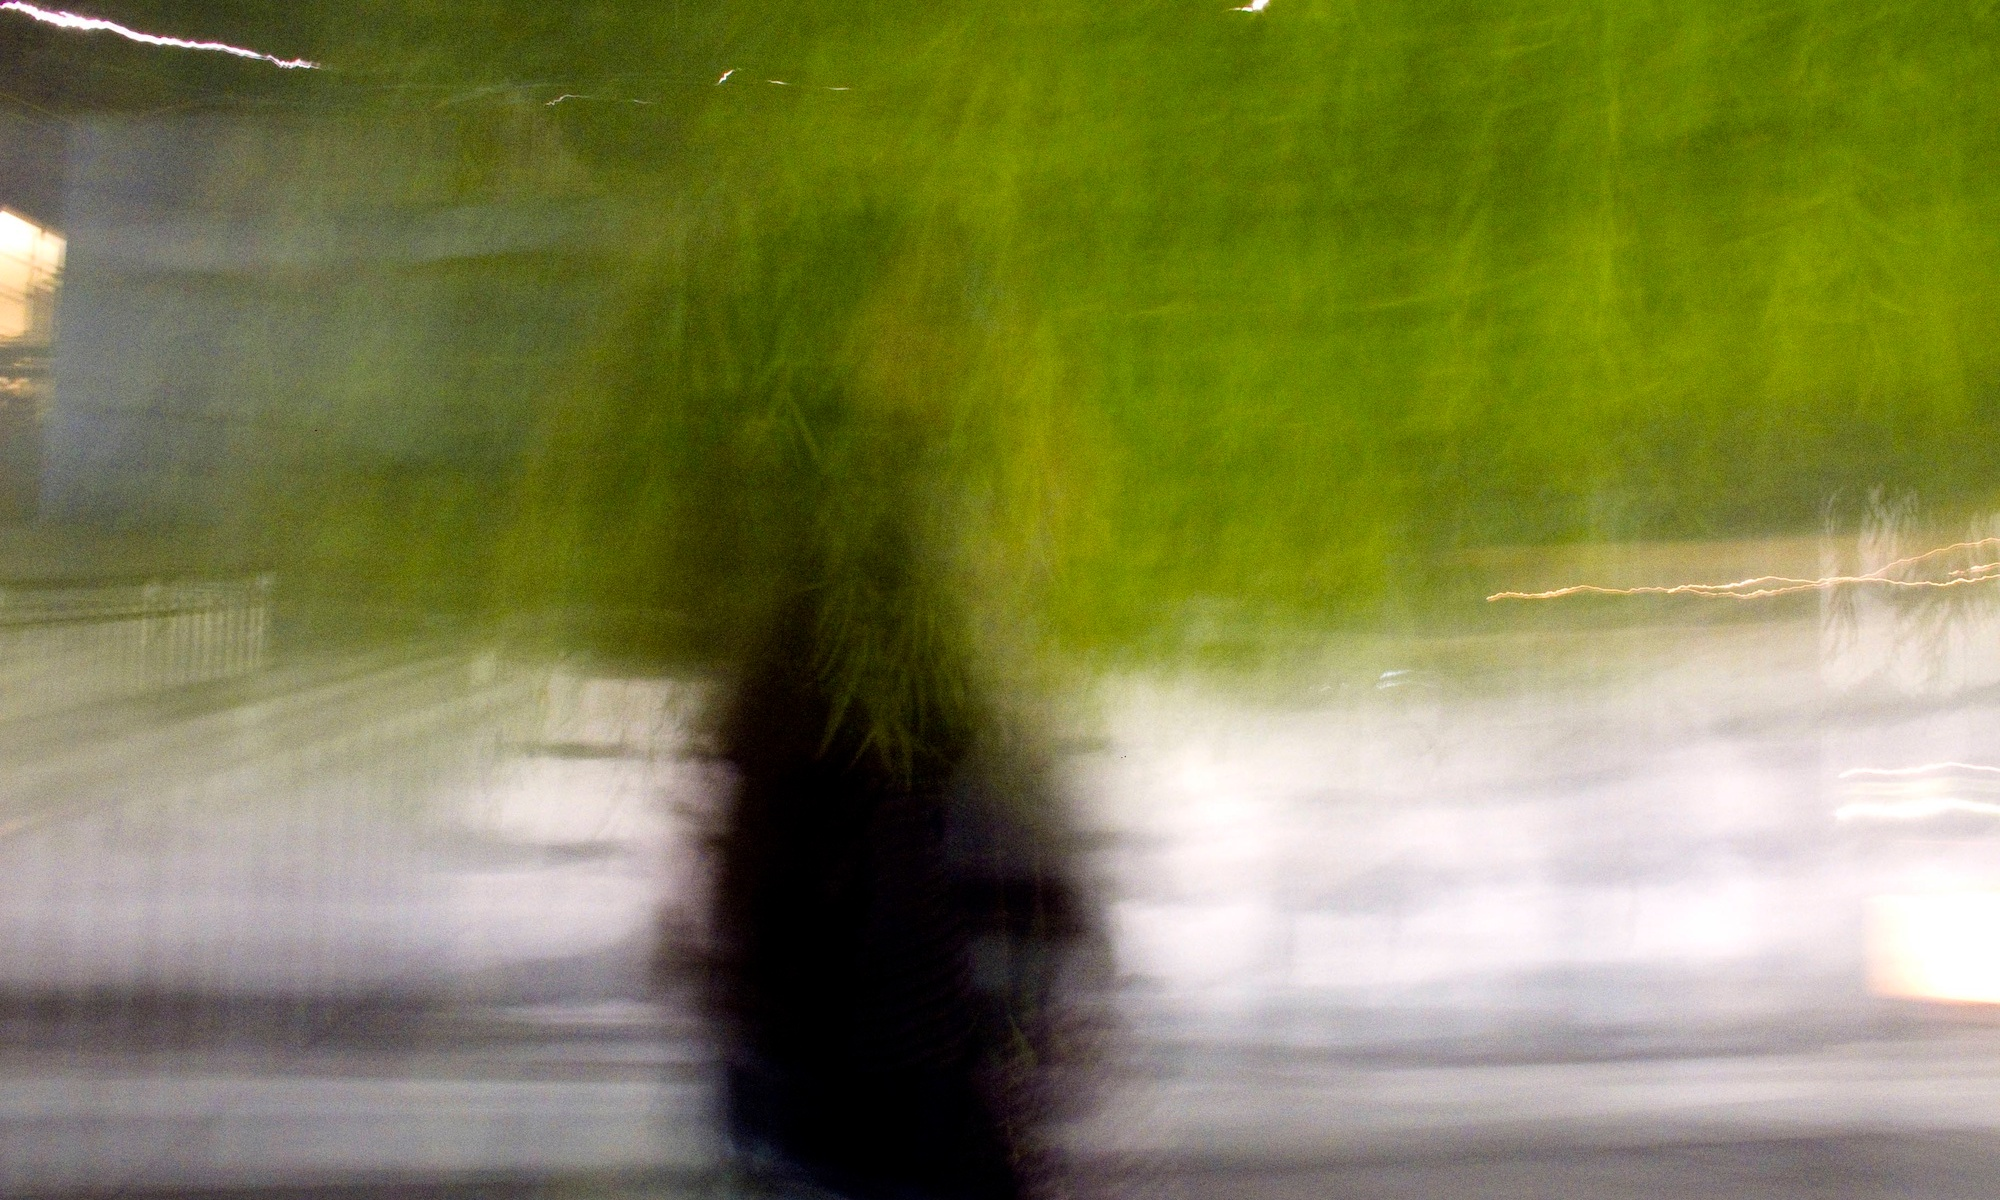 An artistically blurred light portrait of a figure standing under green tree branches.